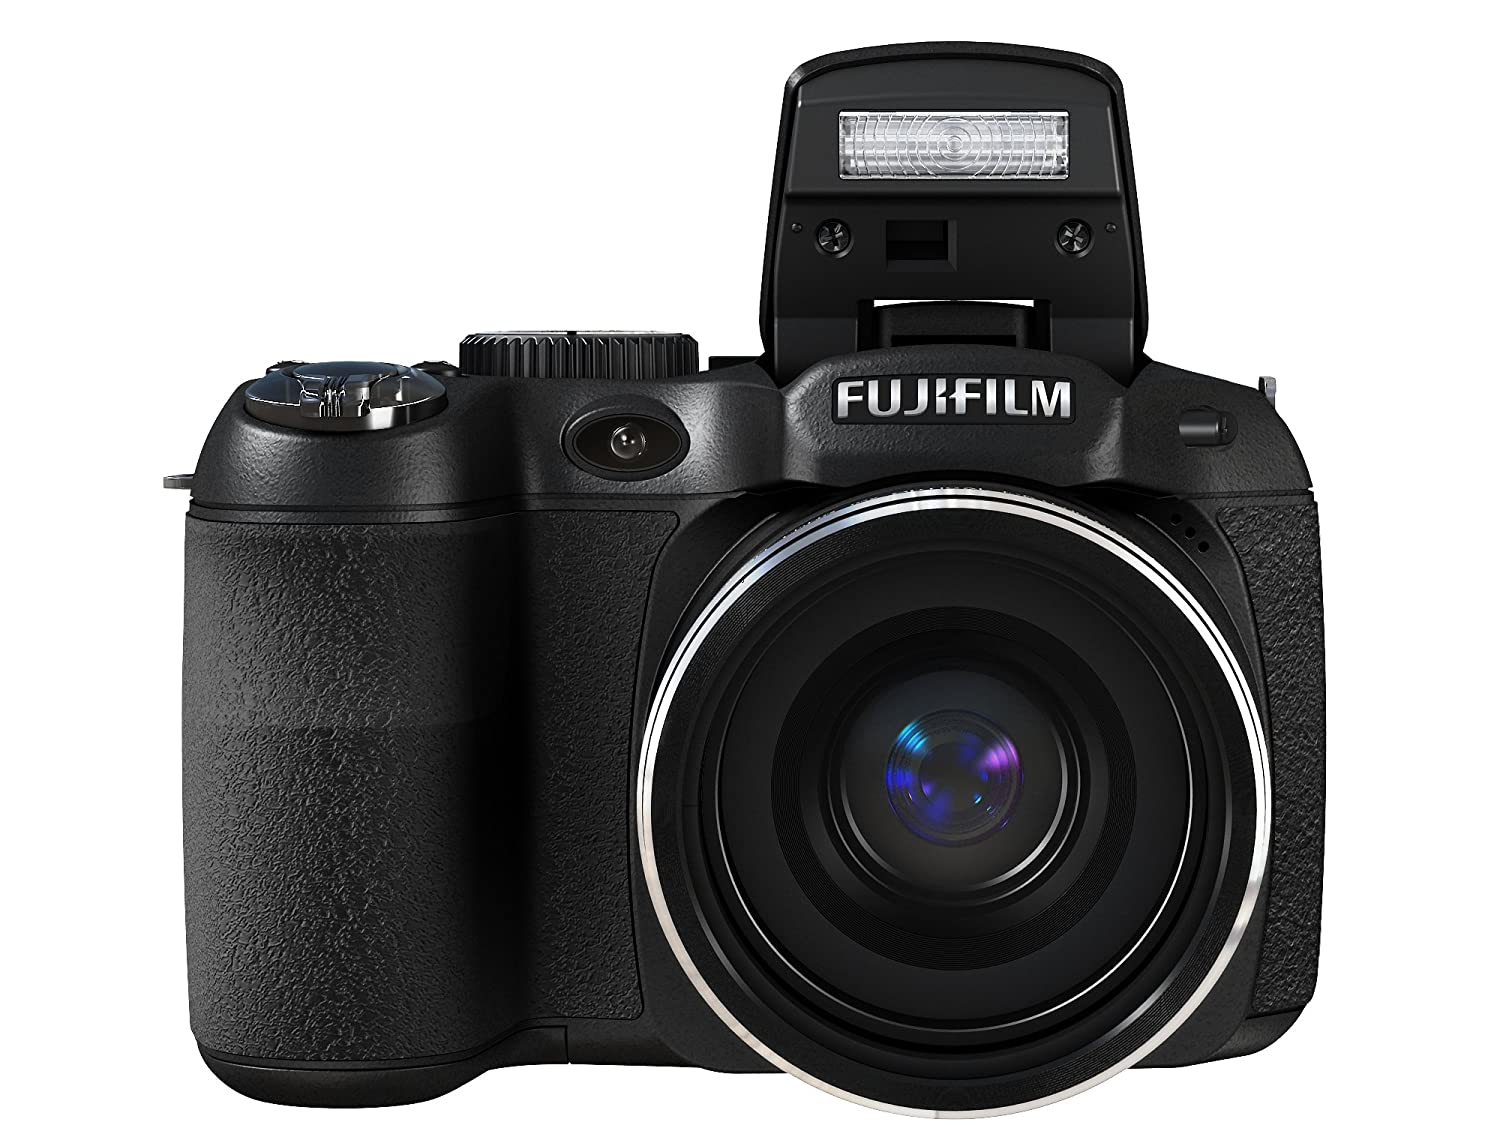 Amazon.com : Fujifilm FinePix S2800HD 14 MP Digital Camera with 18x Wide  Optical Zoom and 3.0-Inch LCD : Point And Shoot Digital Cameras : Camera &  Photo